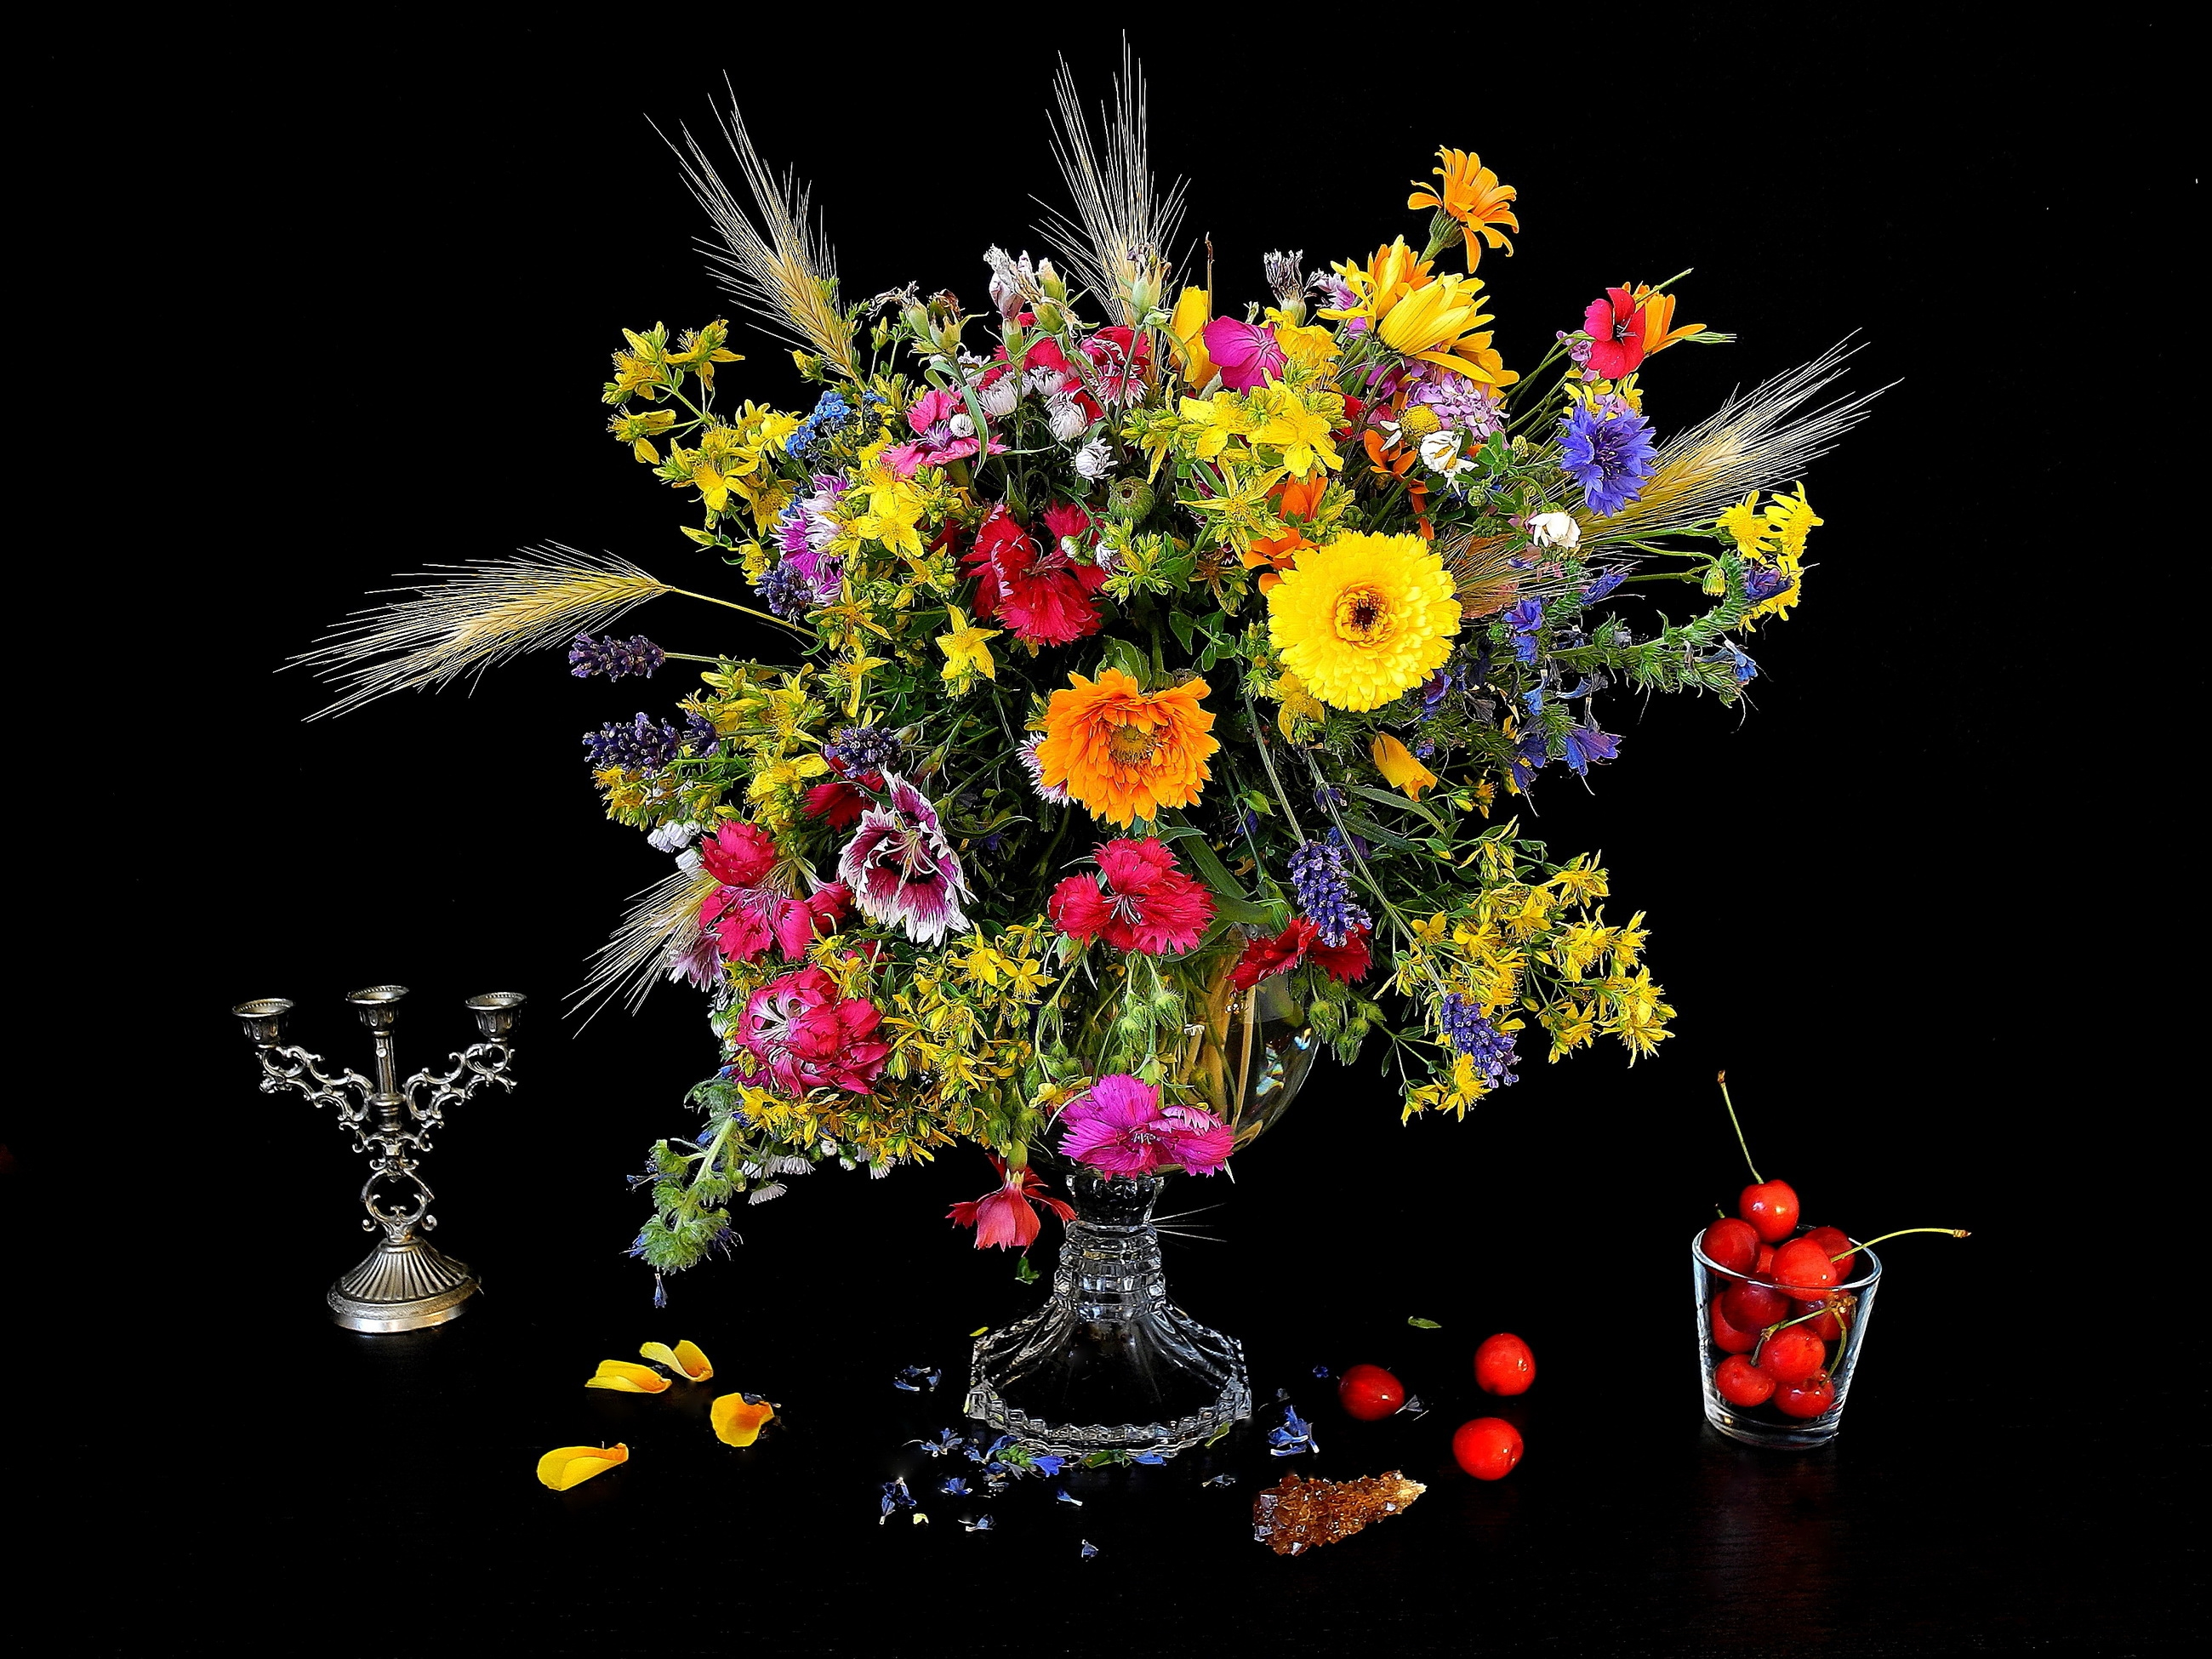 Free Colorful Flower Wallpaper Downloads: Colorful Flowers On Black Background HD Wallpaper